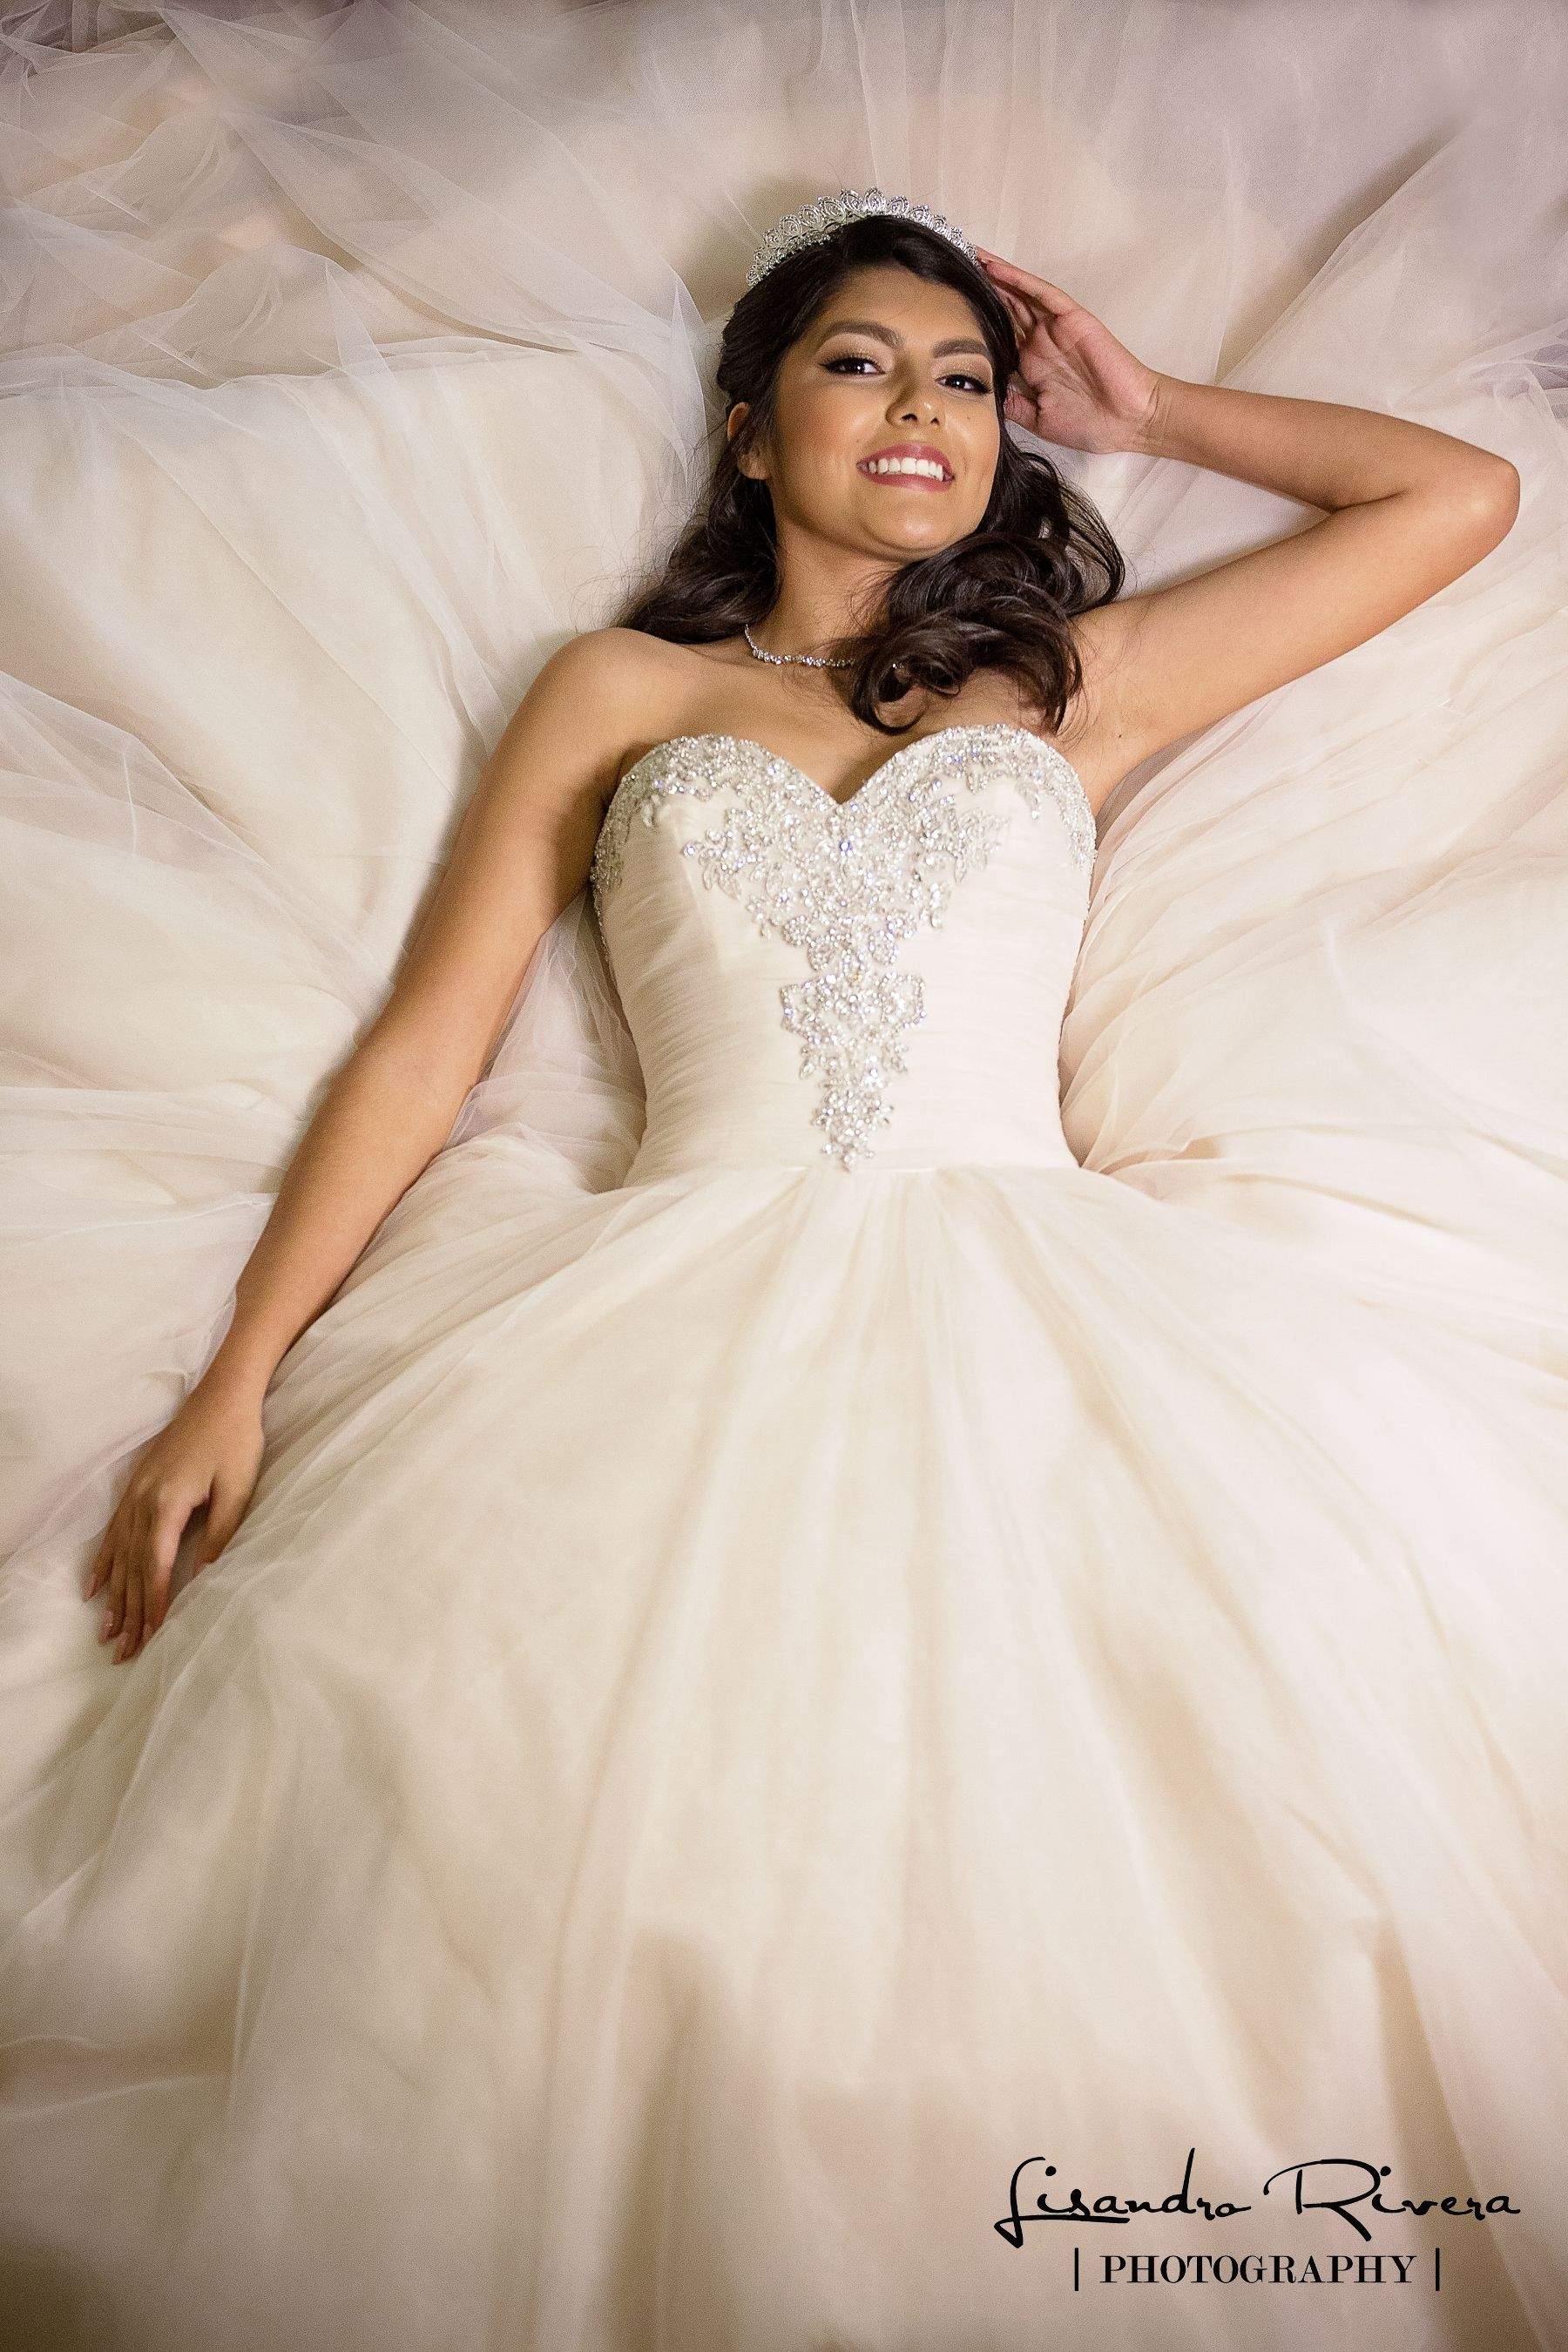 62c27b6b53b Quinceanera dress vintage dress. Beige Quinceanera dress. by Lisandro  Rivera Photography